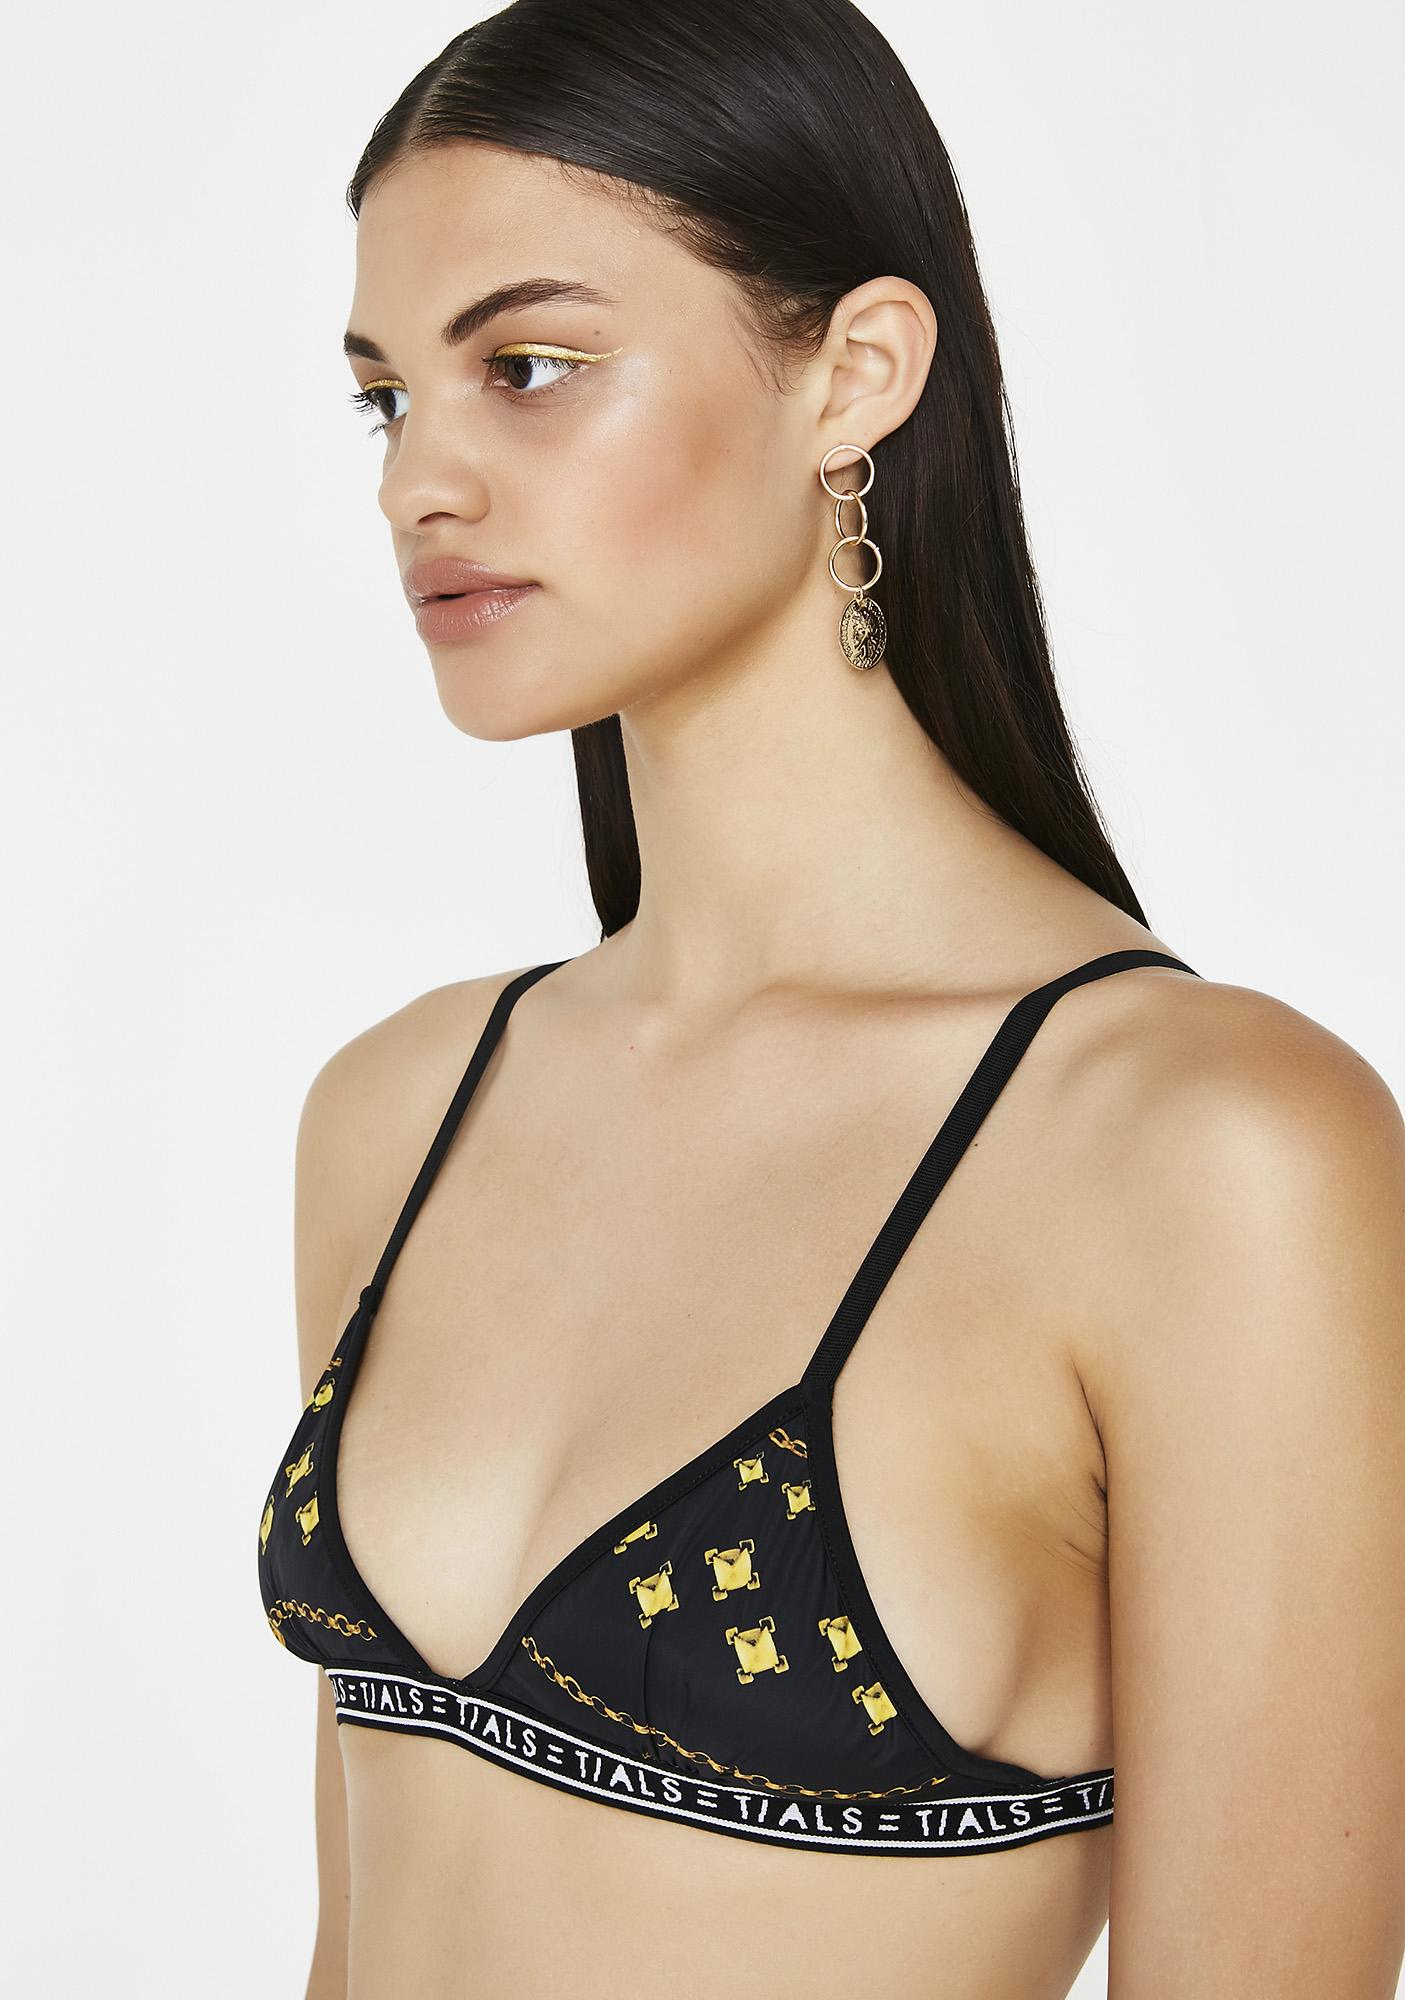 This Is A Love Song x Baroque Simple Bra